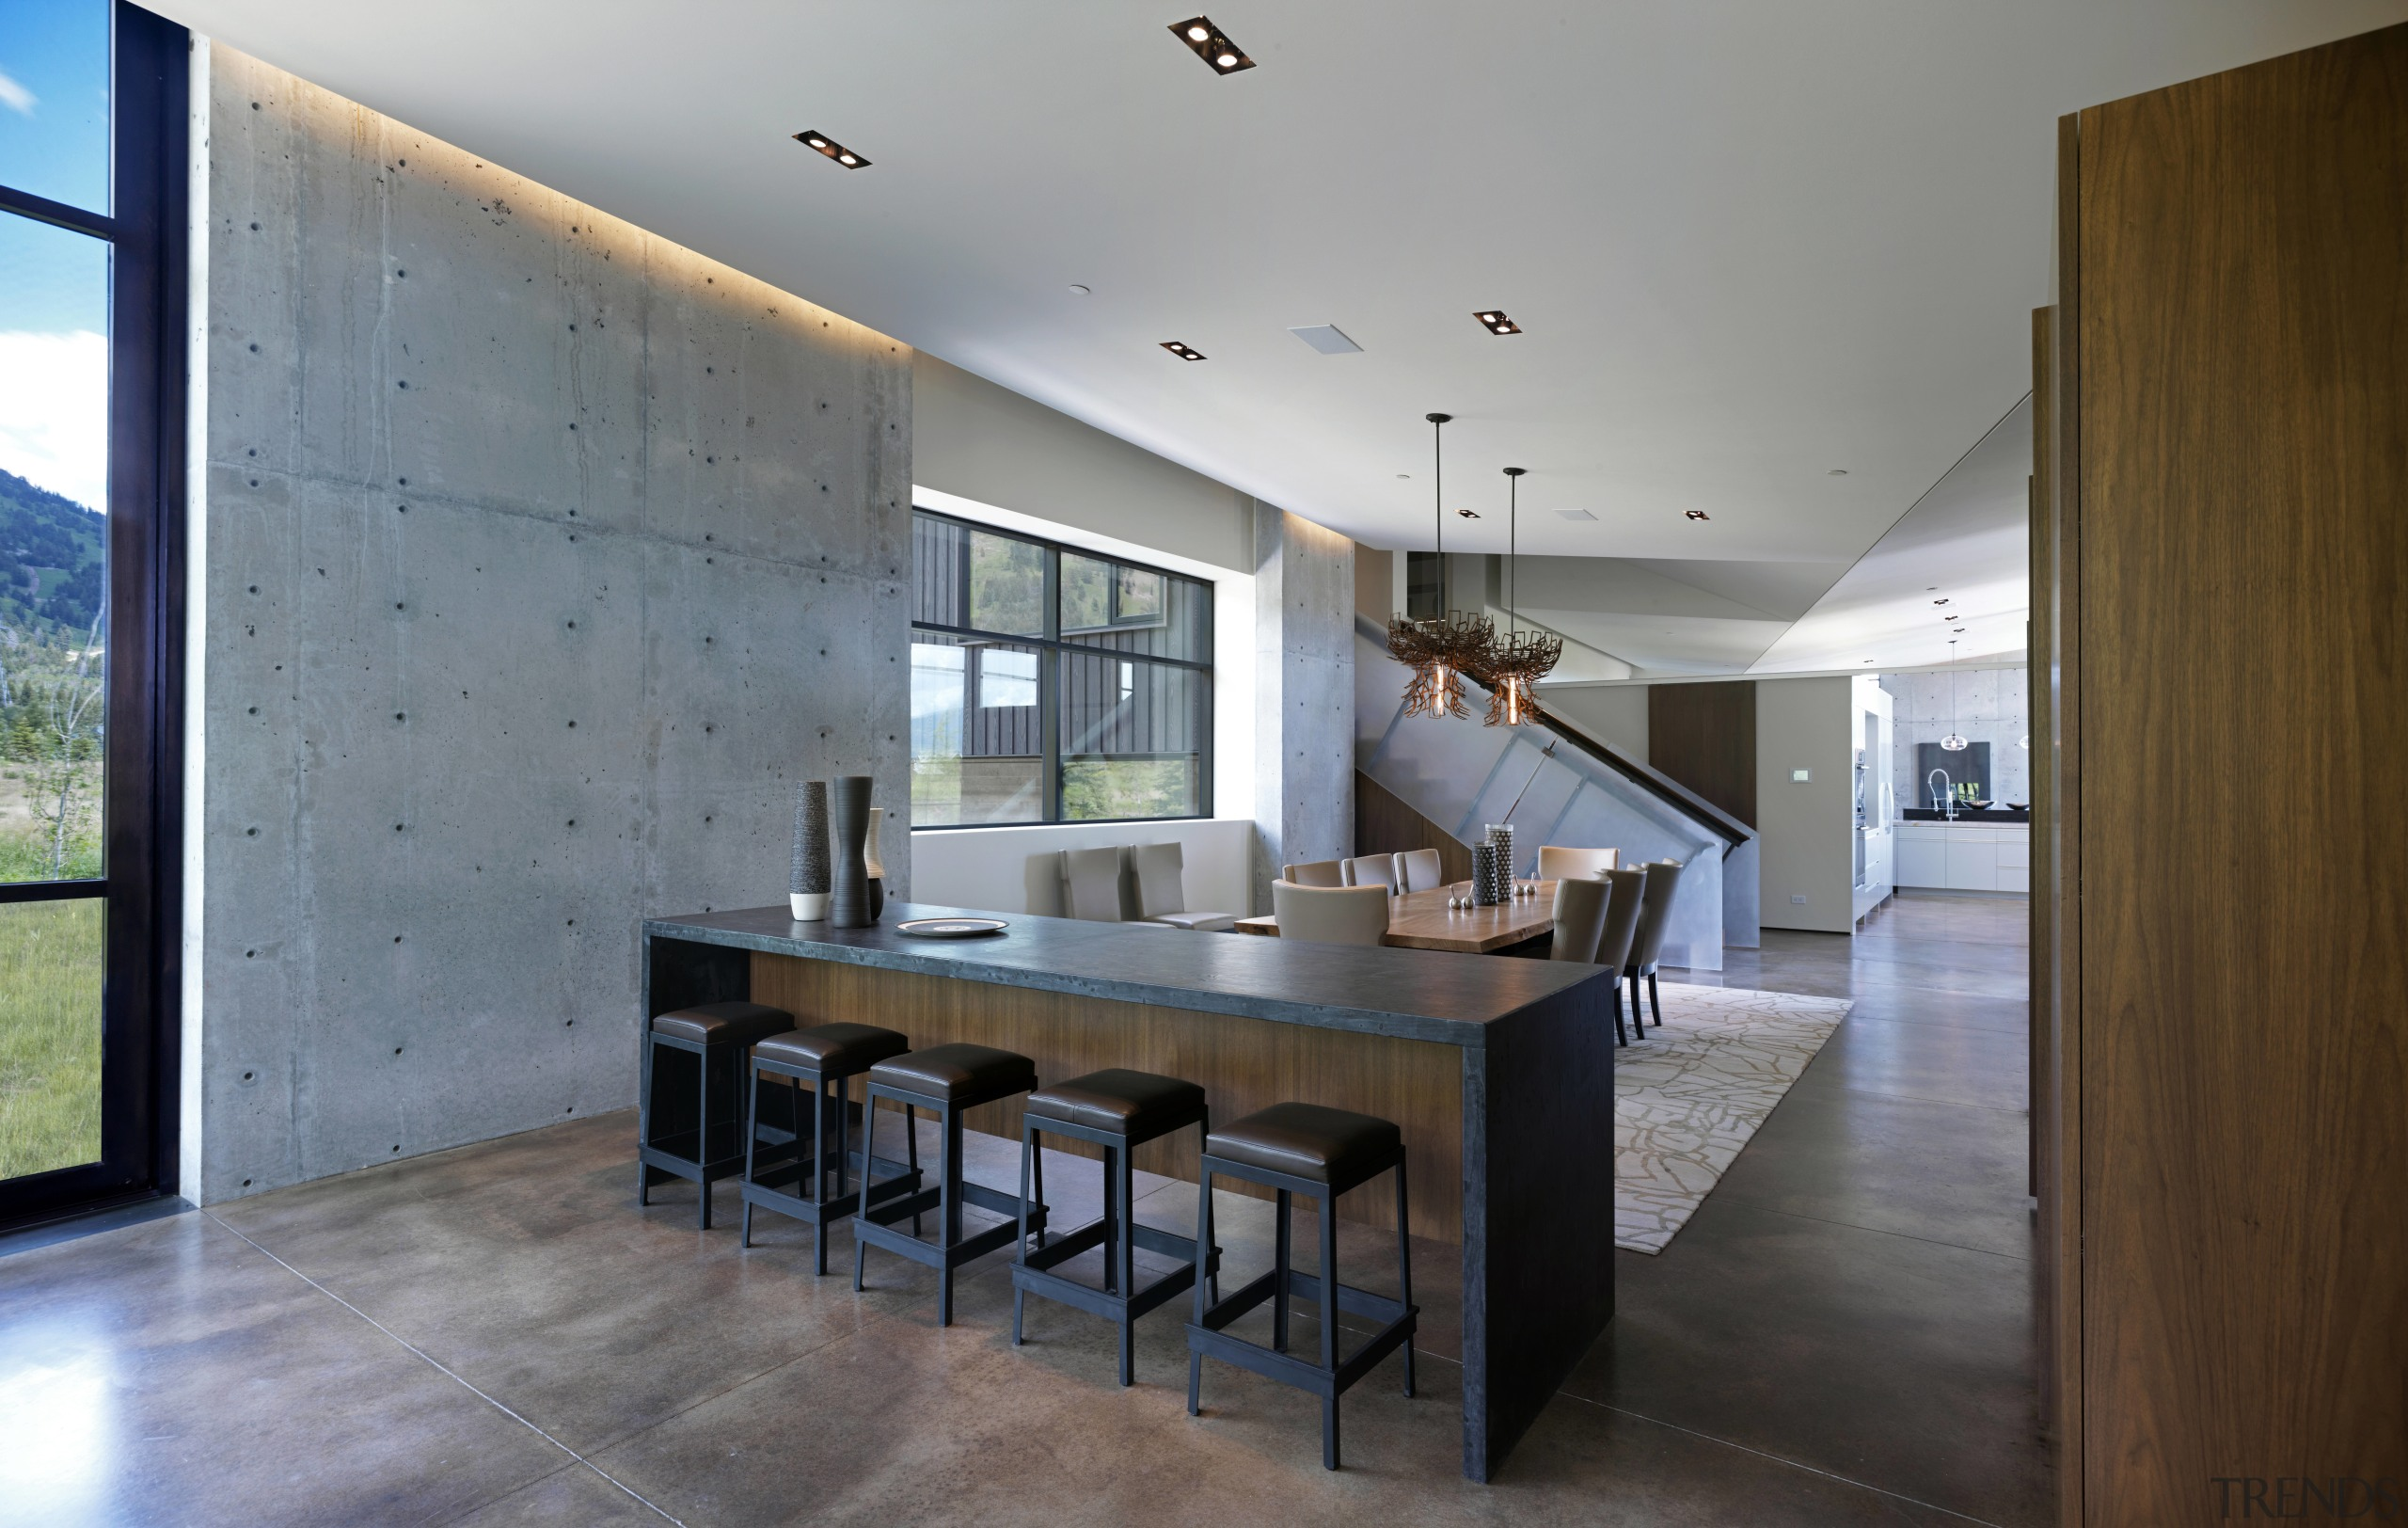 The interior of this mountain home designed by architecture, ceiling, countertop, dining room, estate, floor, flooring, house, interior design, kitchen, real estate, room, table, gray